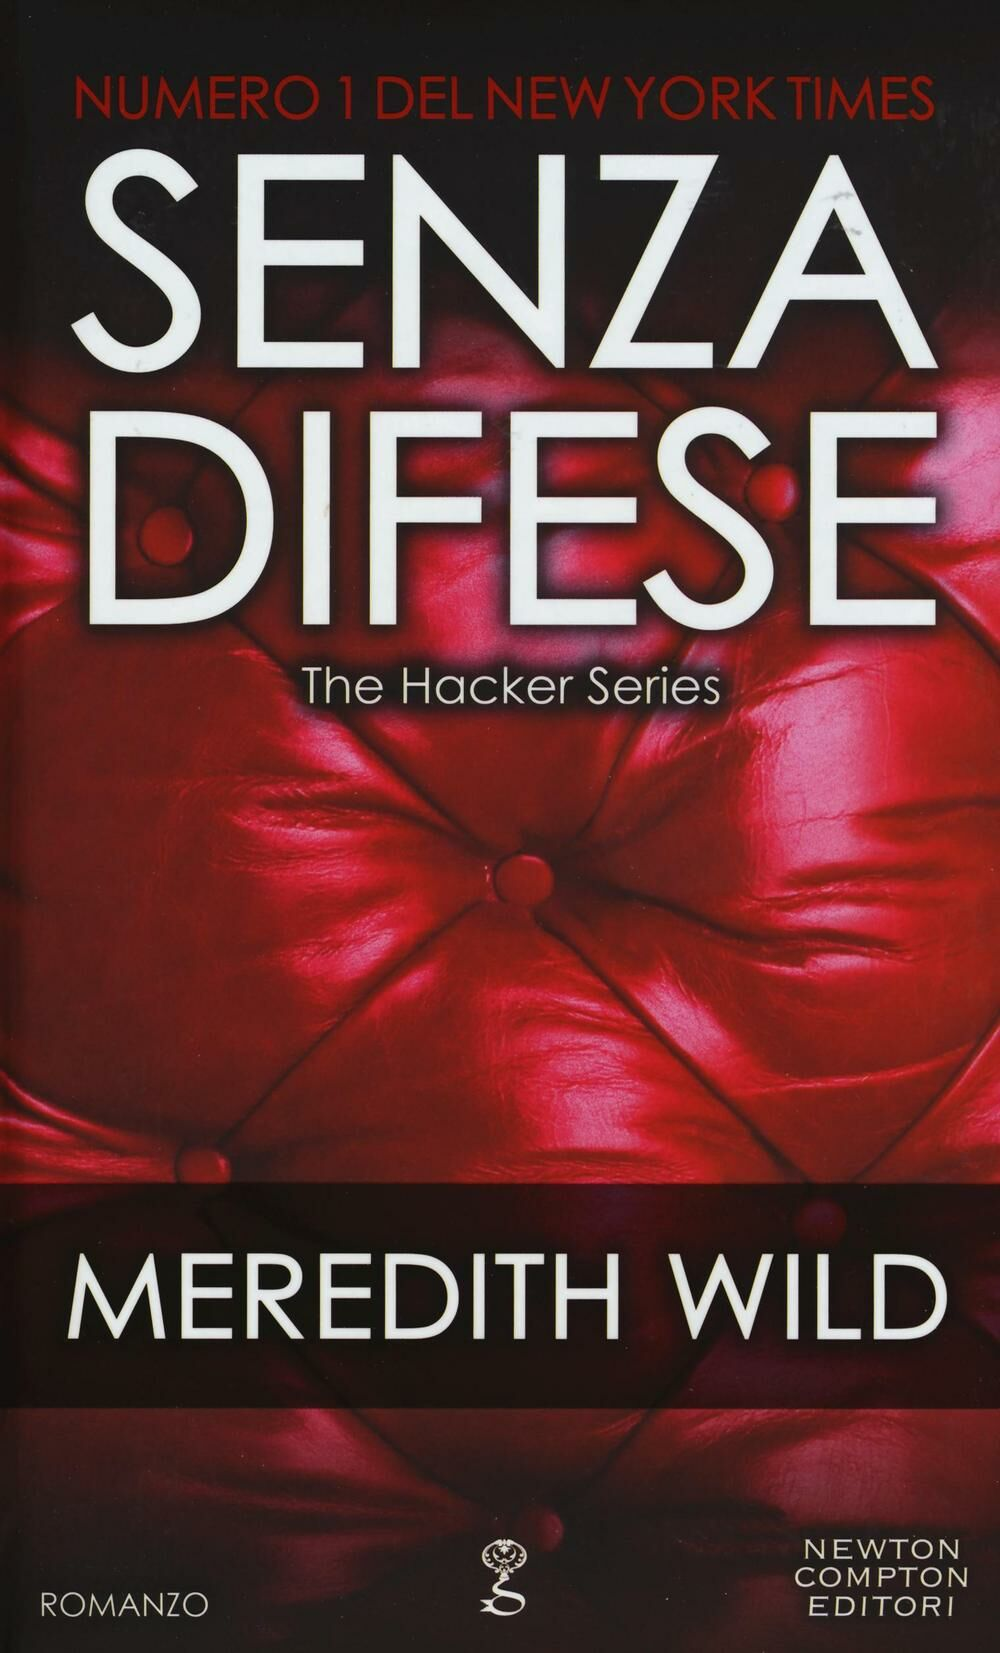 Senza difese. The hacker series